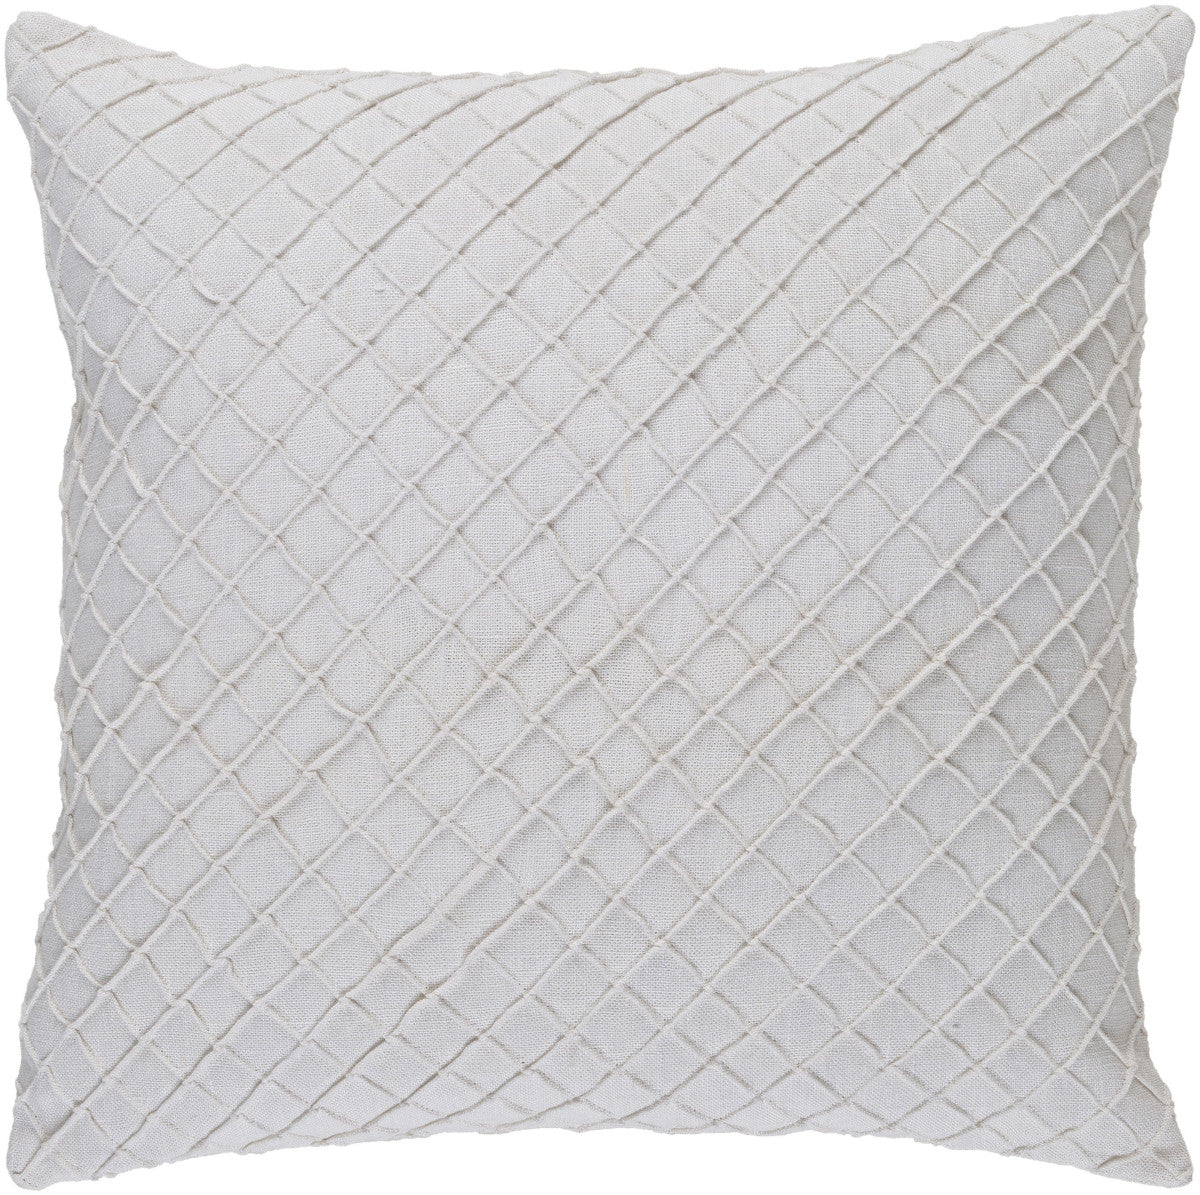 Surya Wright WR004 Pillow